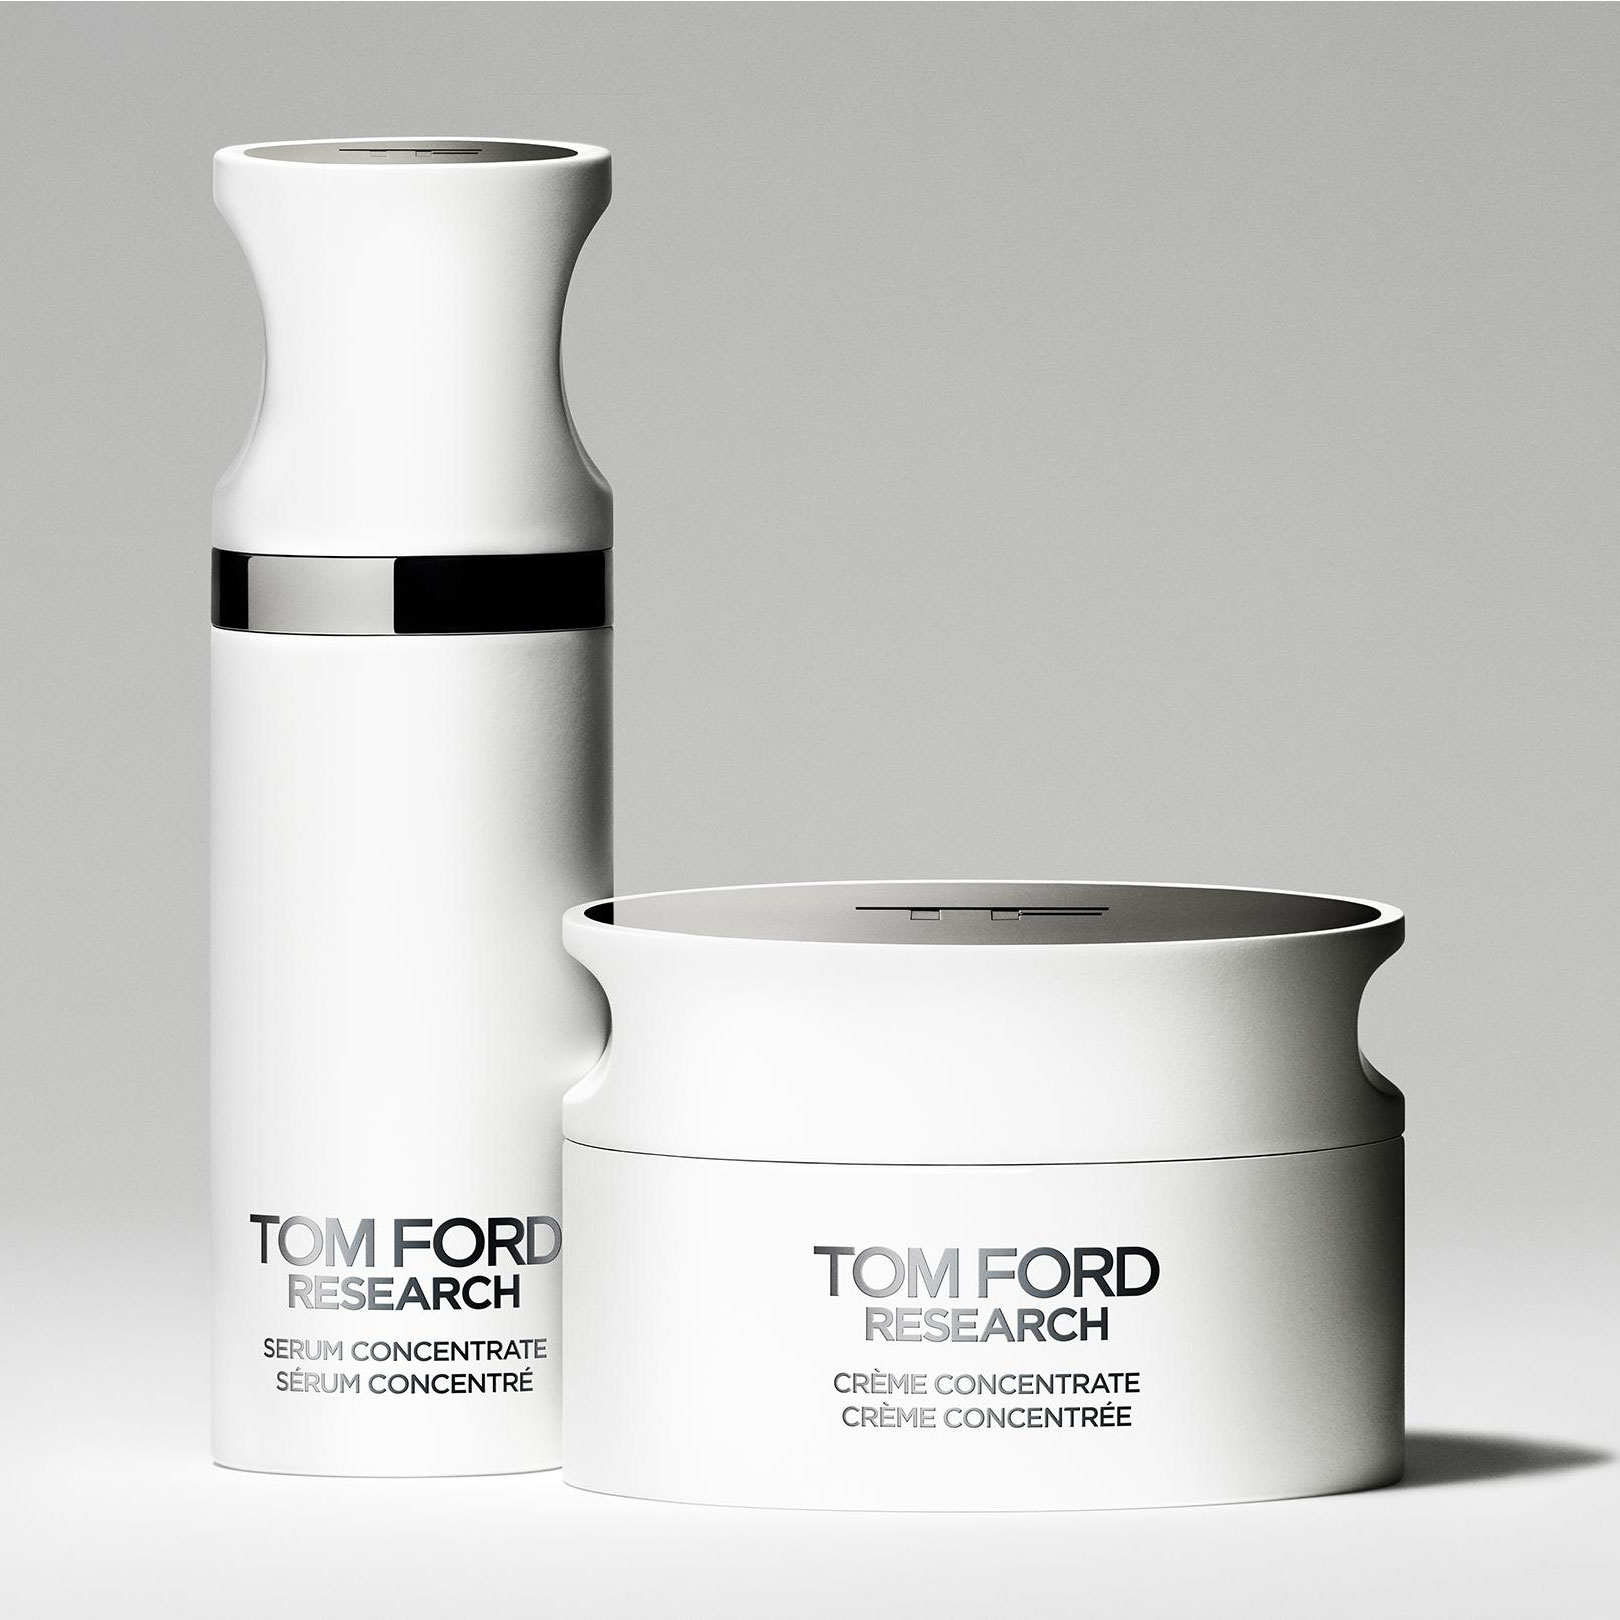 tom-ford-research-still-life